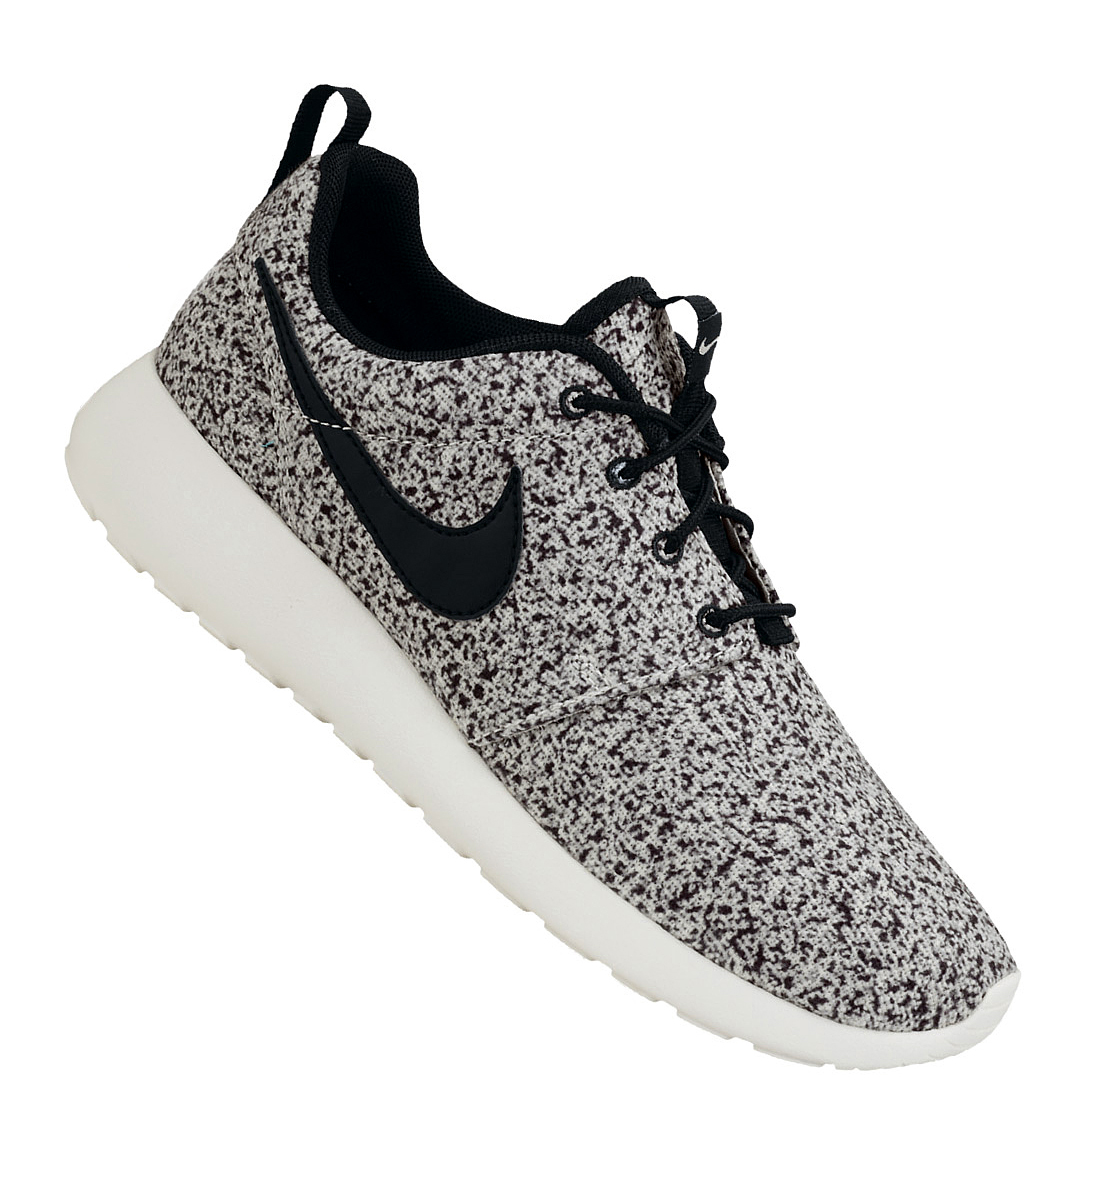 timeless design 8a970 618fb Nike Roshe Run WMNS - Speckle Pack | Sole Collector